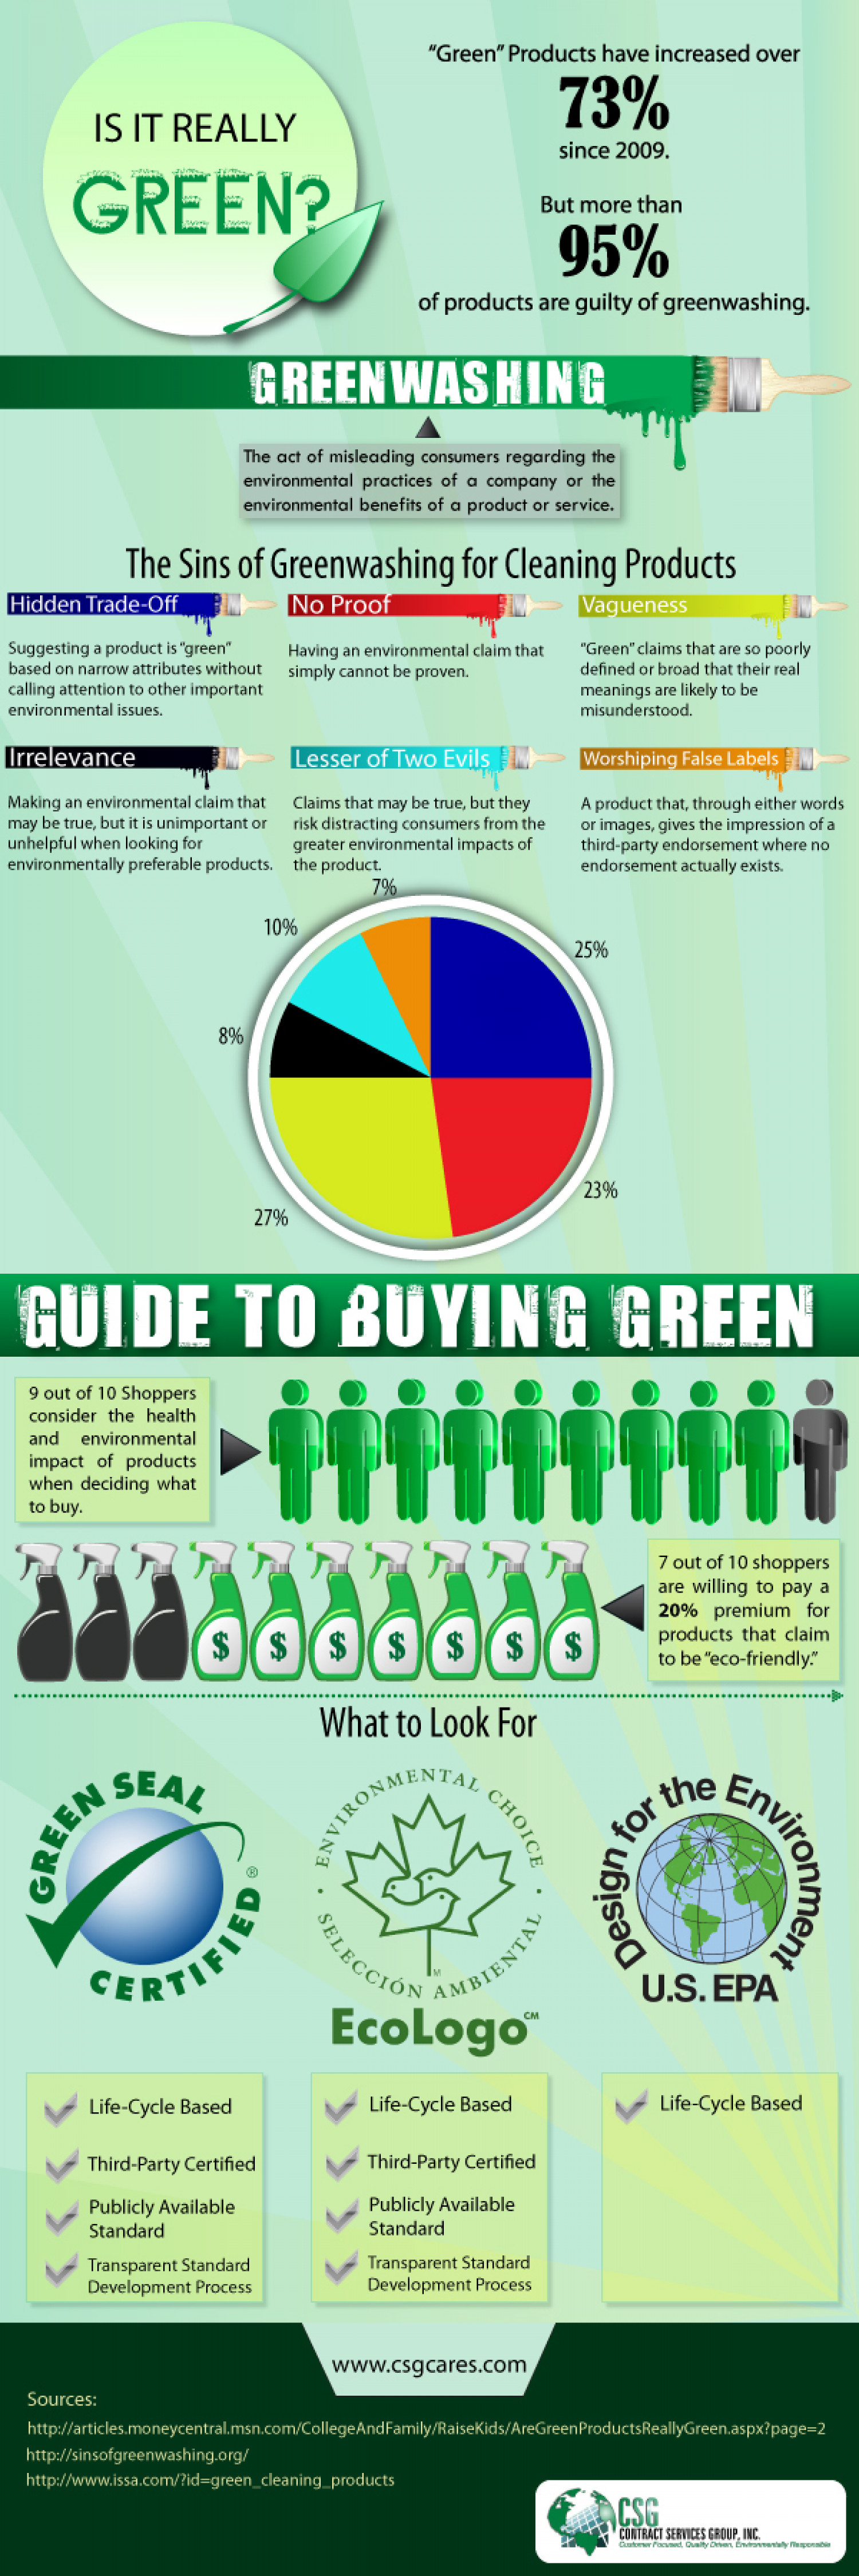 Is it Really Green? Infographic